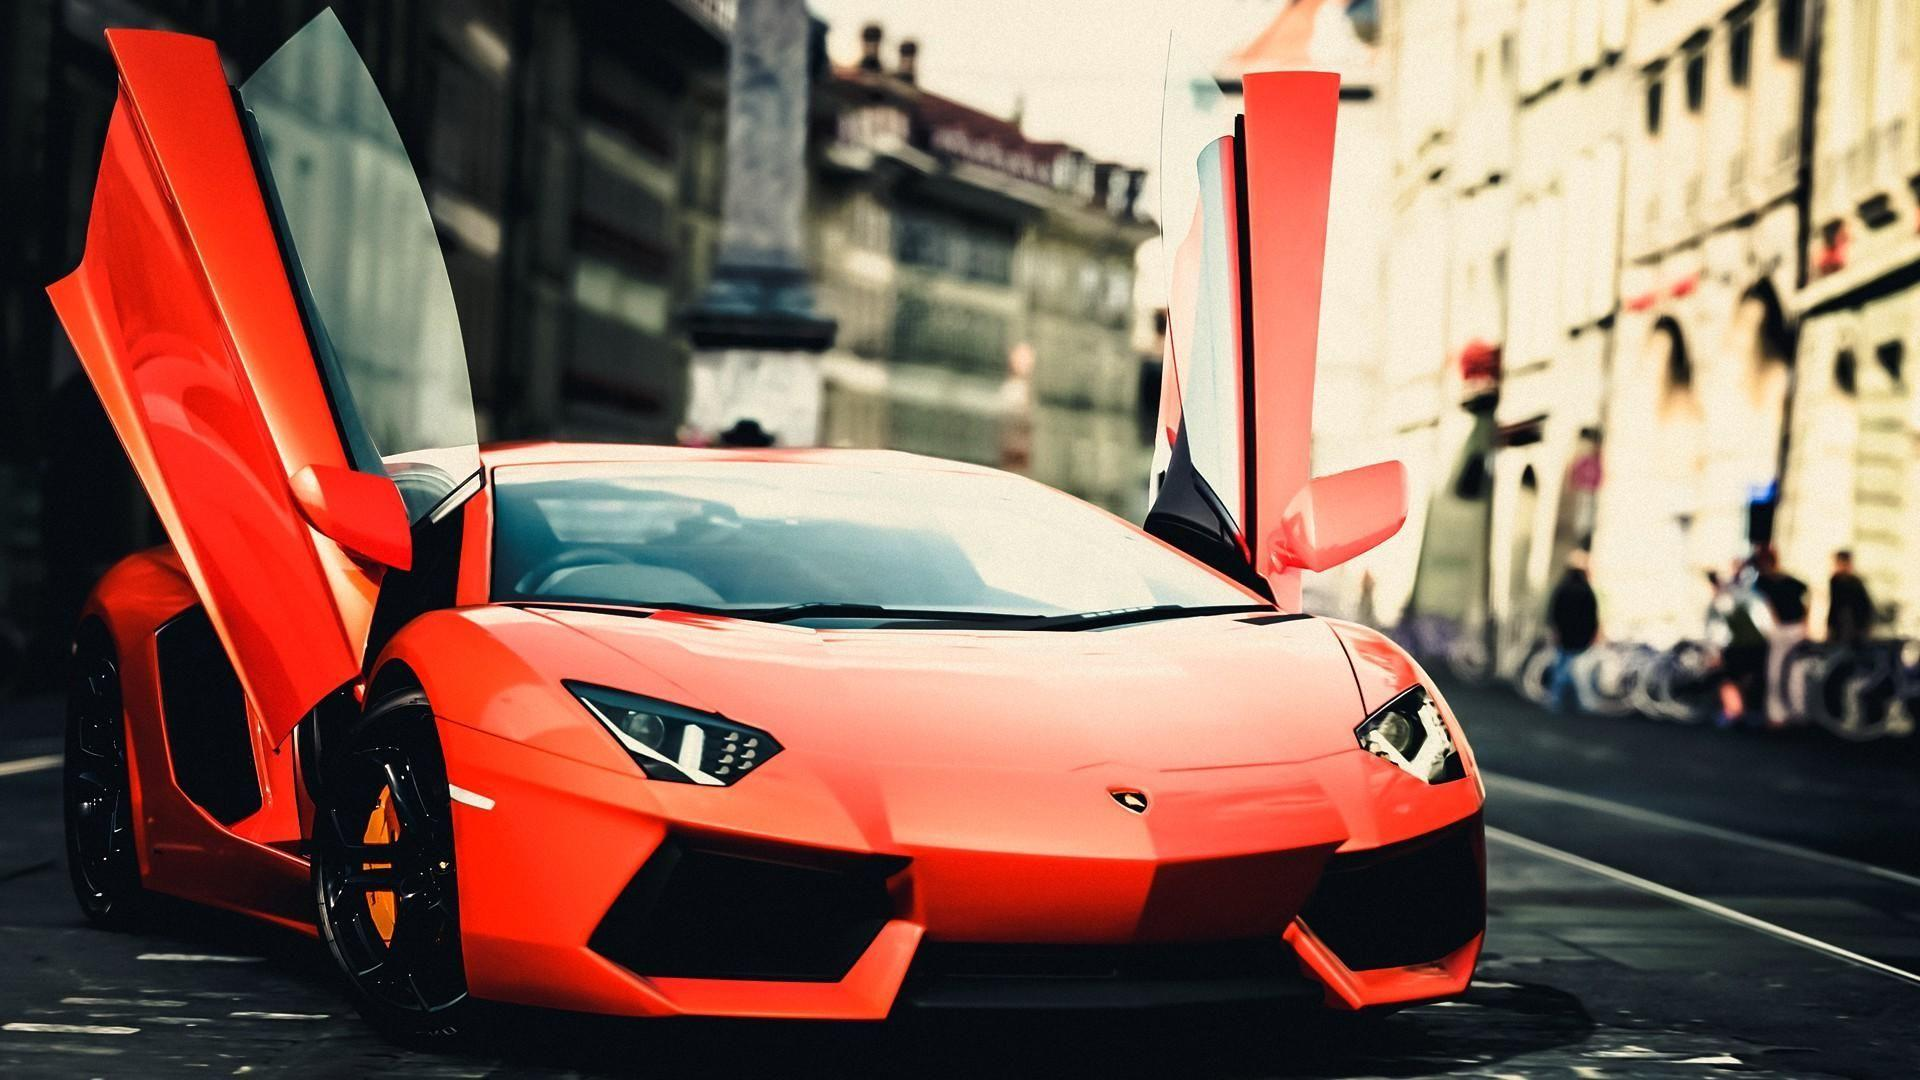 Lamborghini Wallpaper Wide | Vehicles Wallpapers | Pinterest .